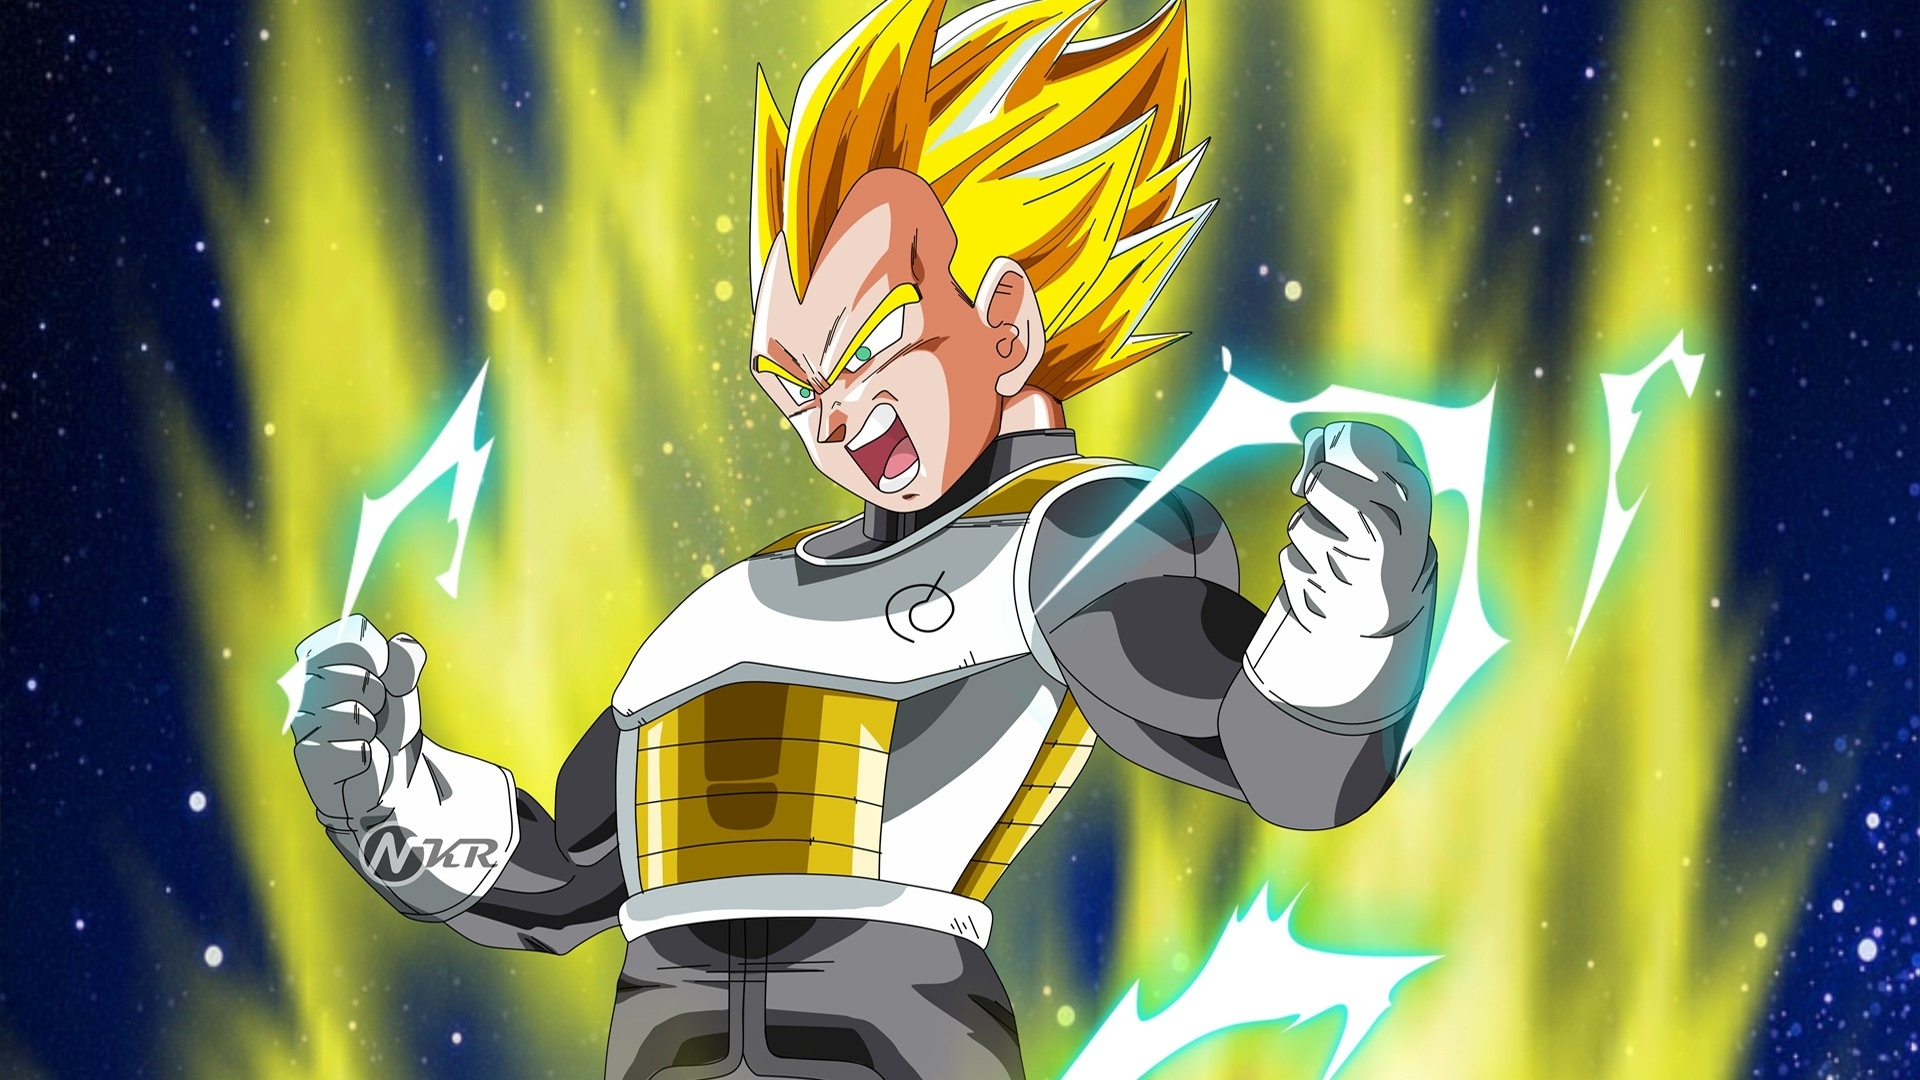 vegeta super saiyan dragon ball supe wallpaper #6568